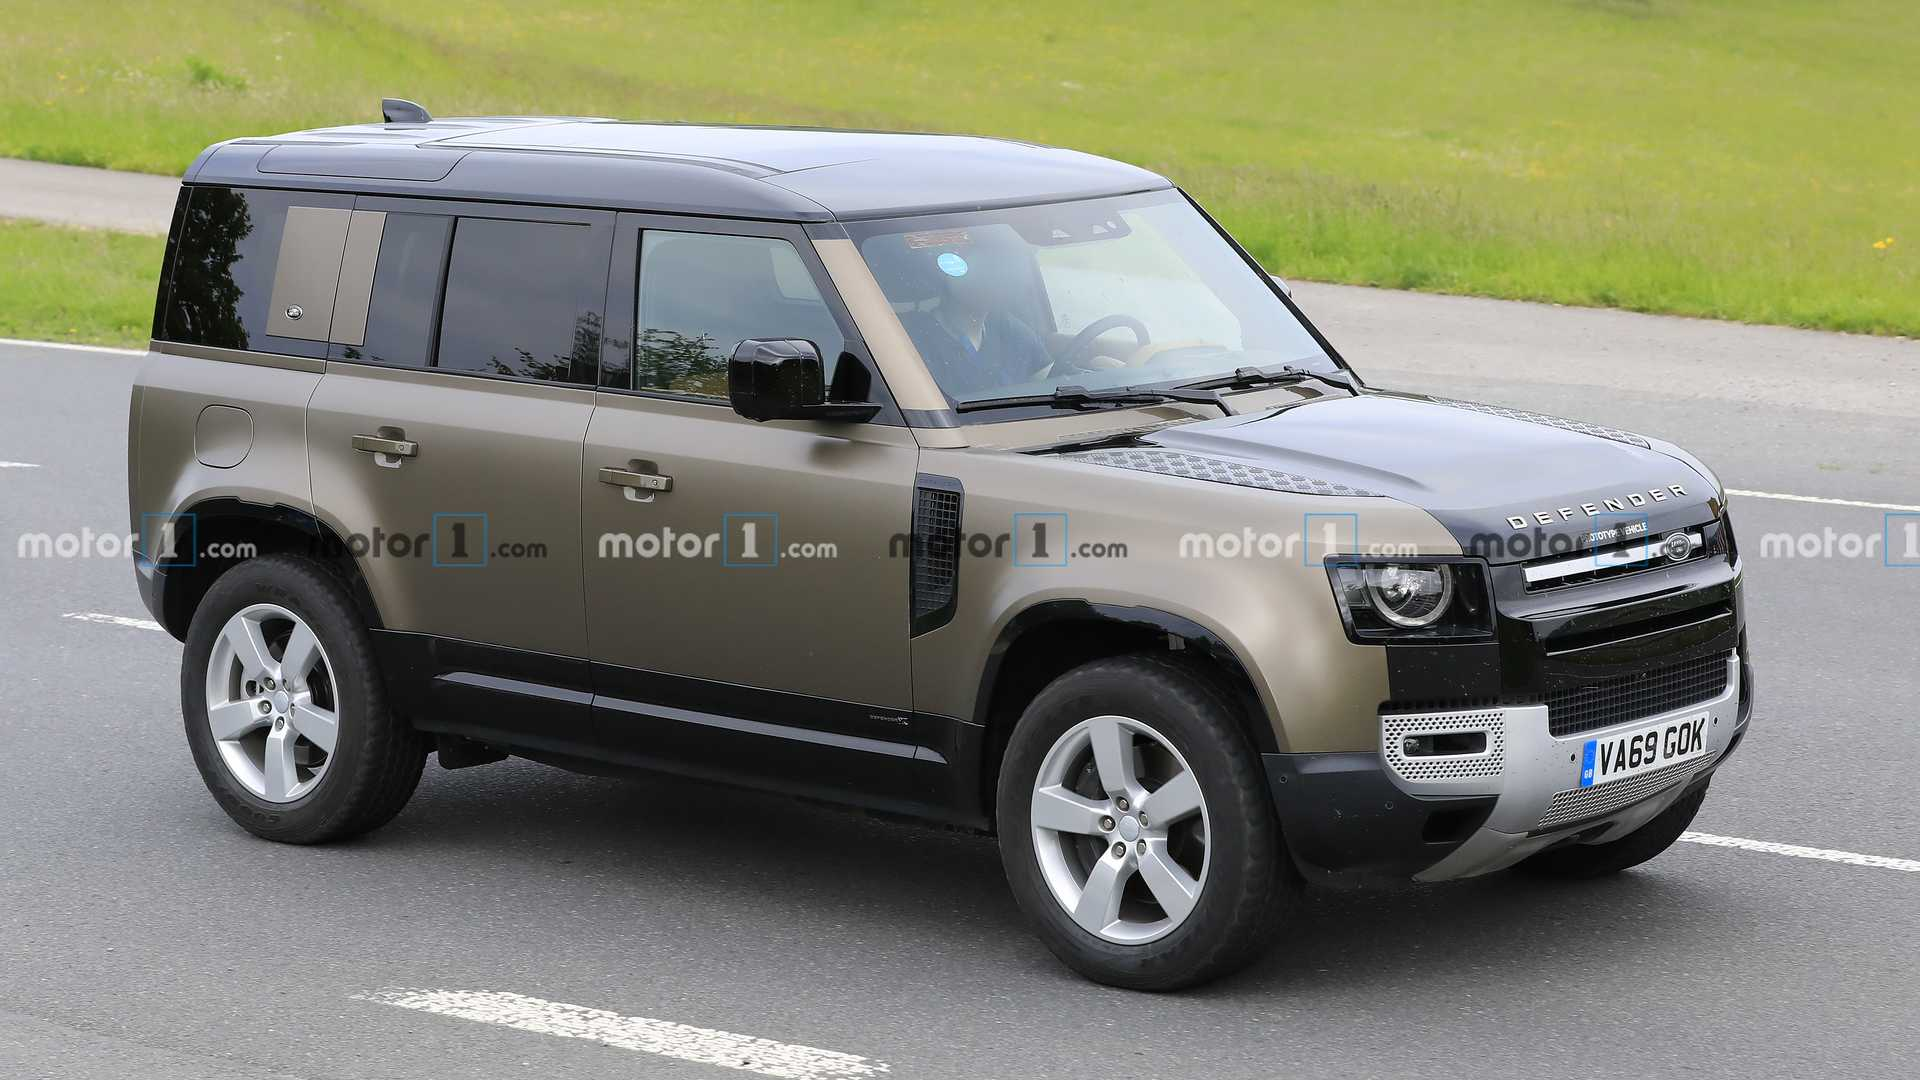 Land Rover Defender V8 Spied Testing On The Road In Europe